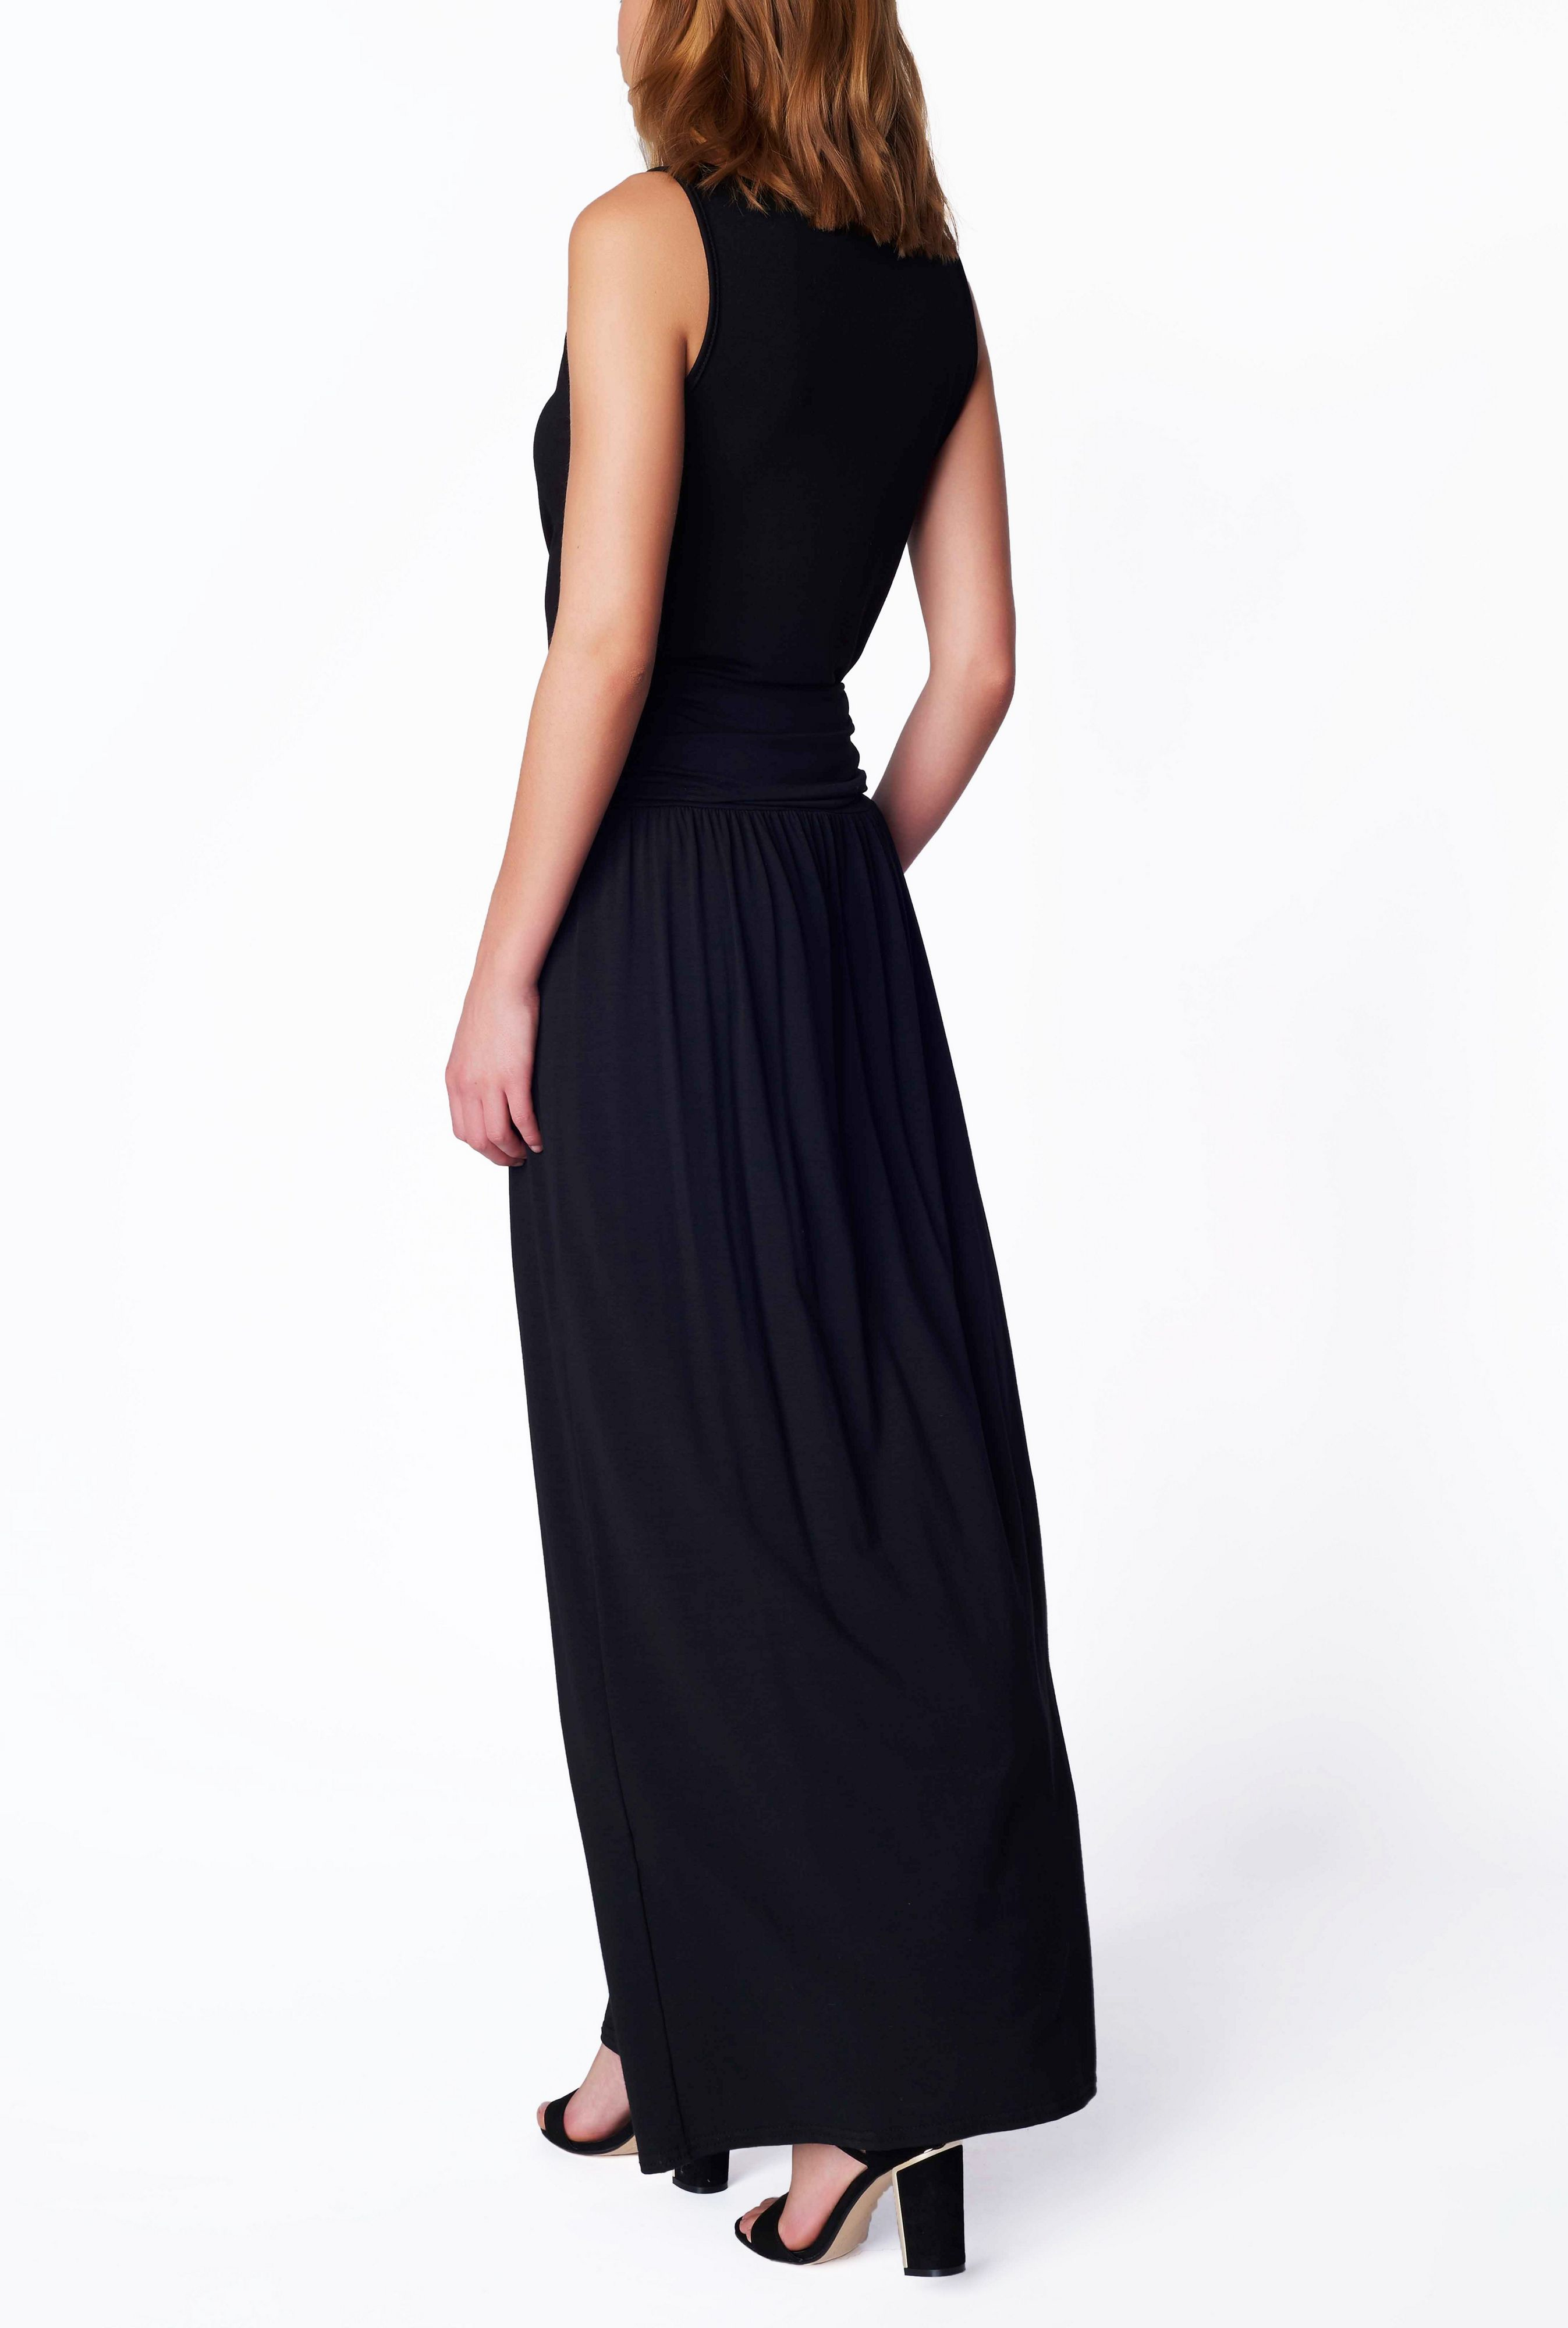 lakeland jersey maxi skirt in black lyst